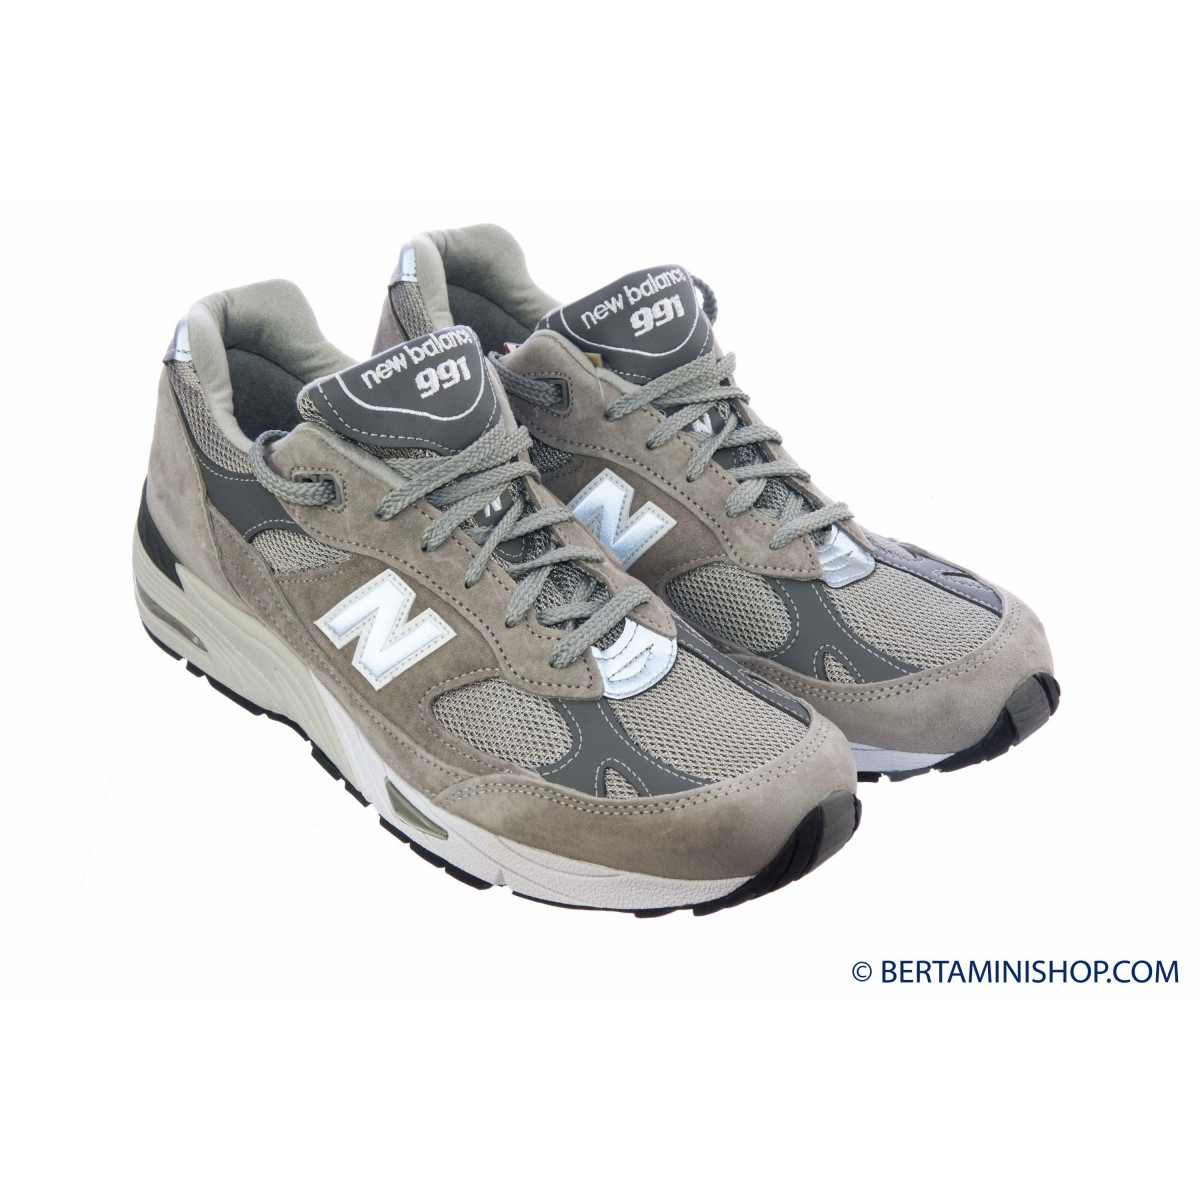 Scarpa - M991 made in uk mesh suede